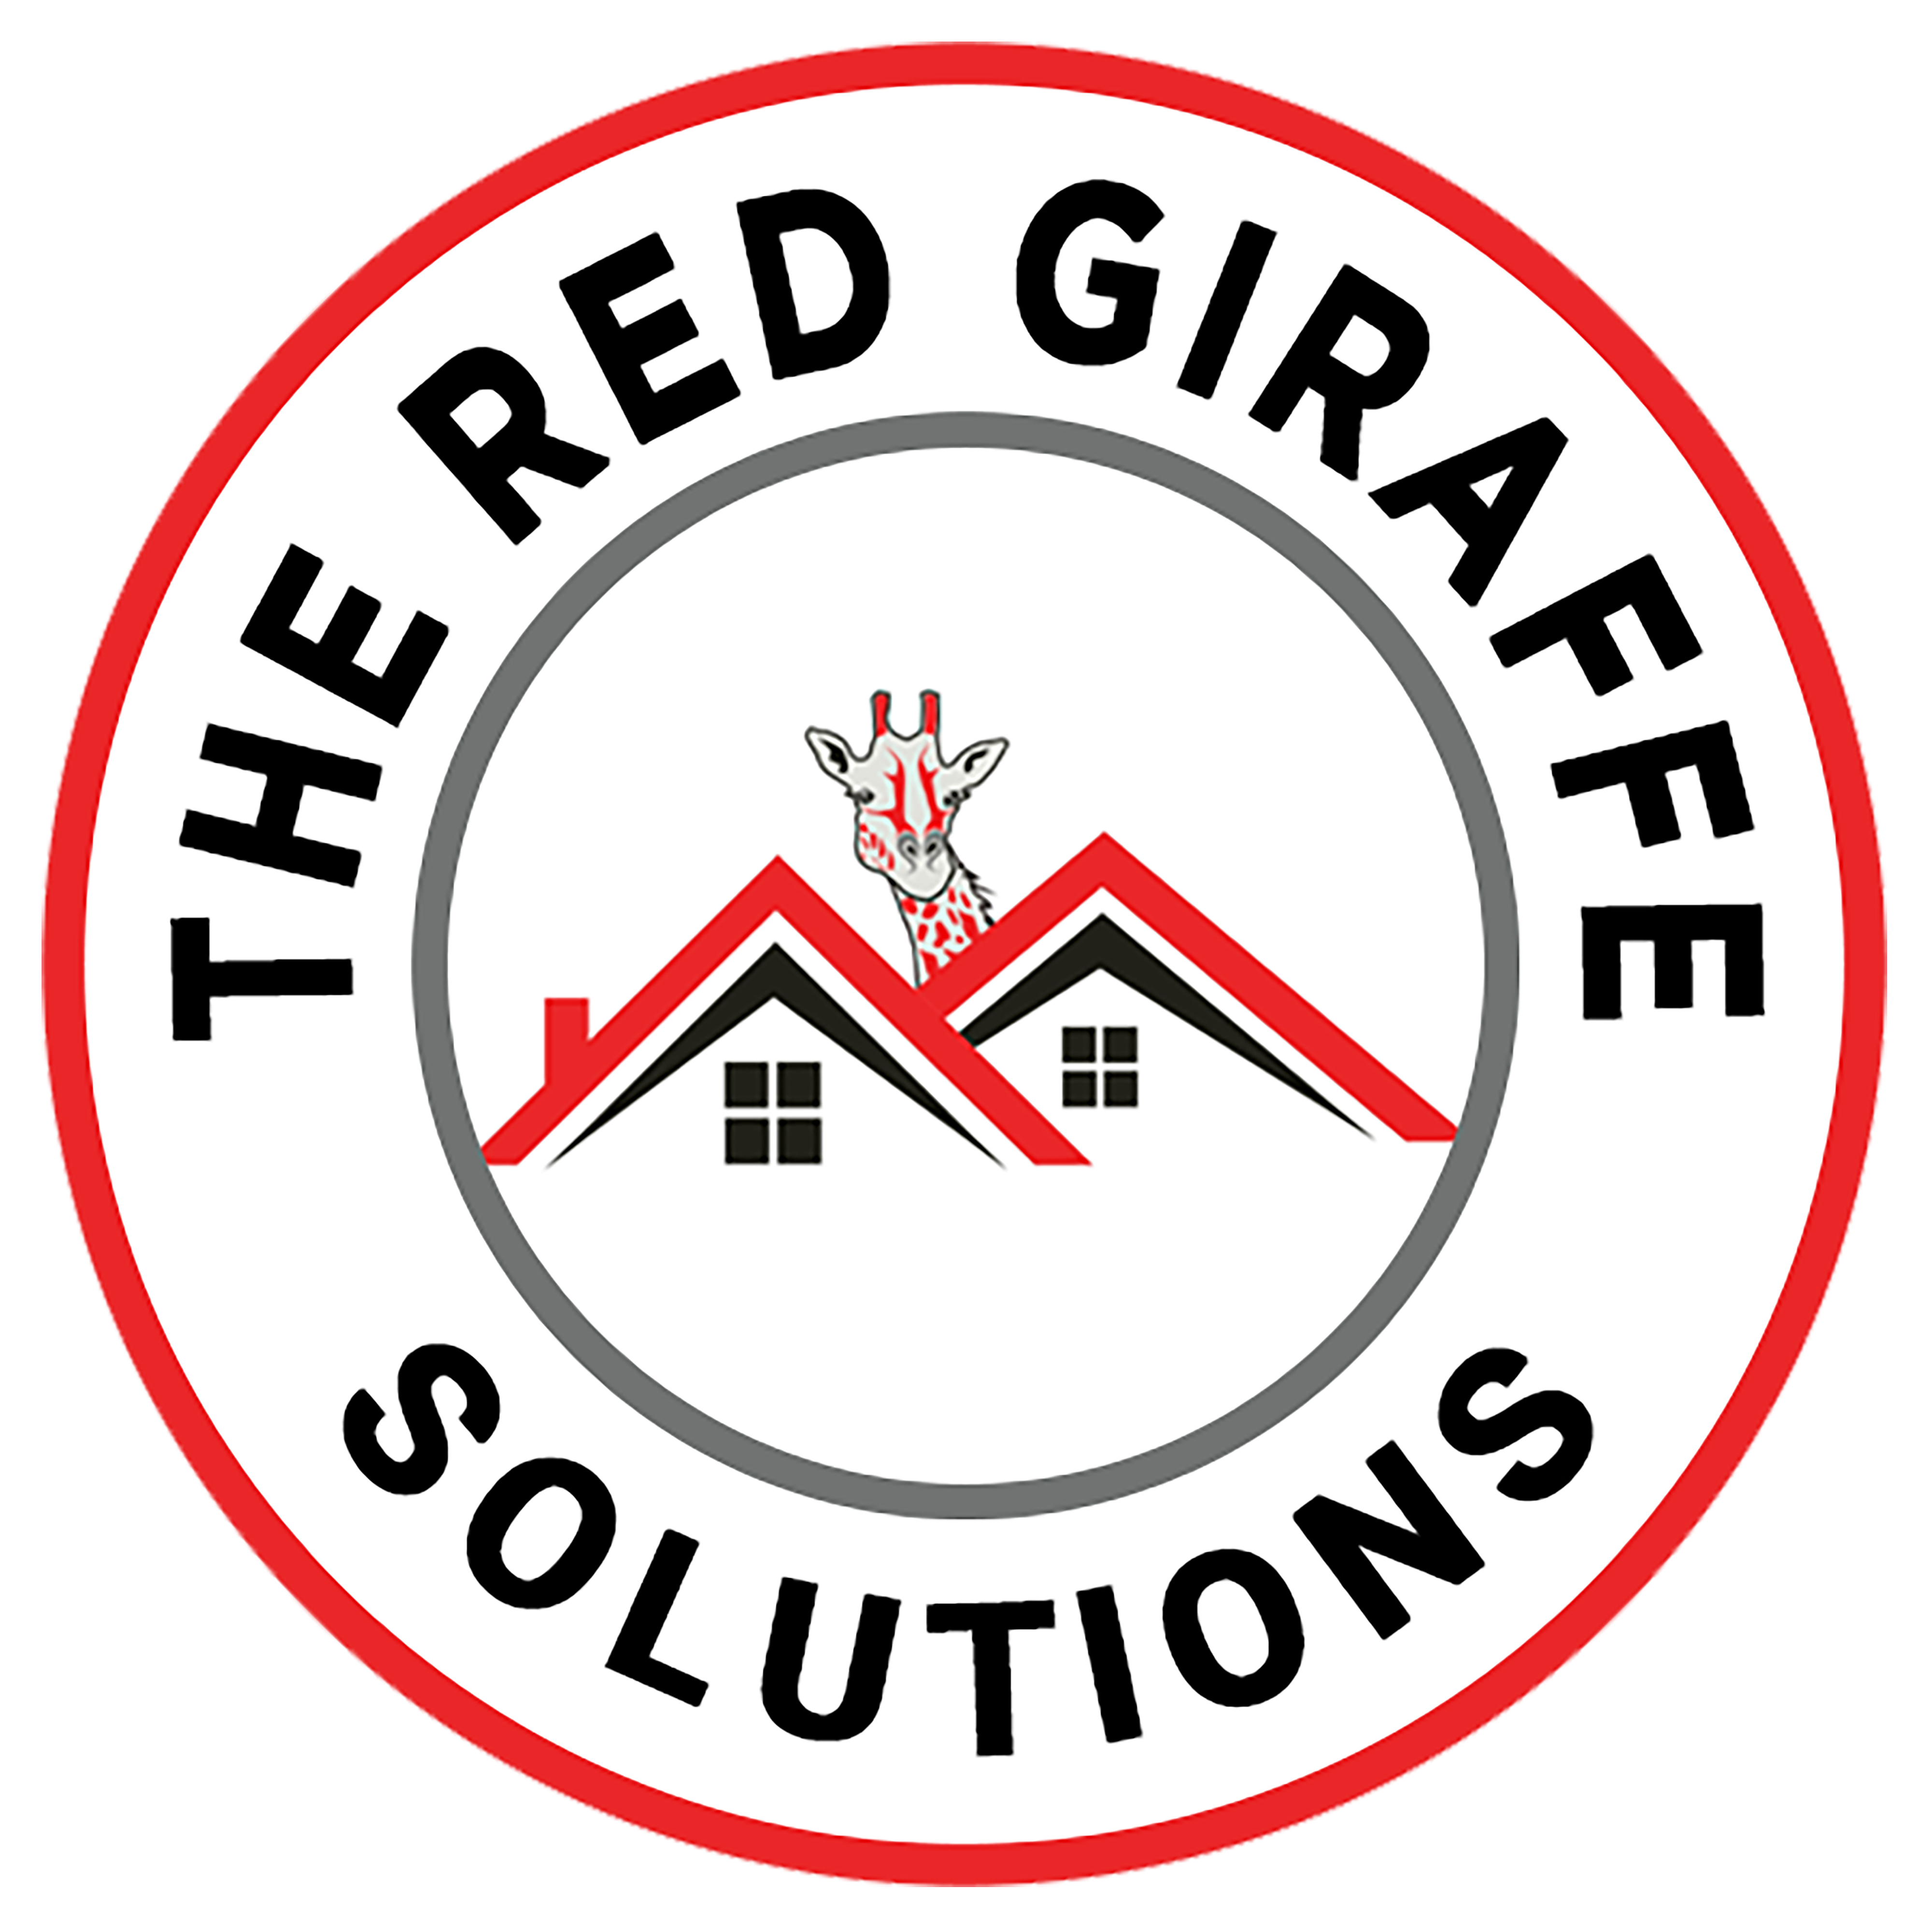 The Red Giraffe Solutions